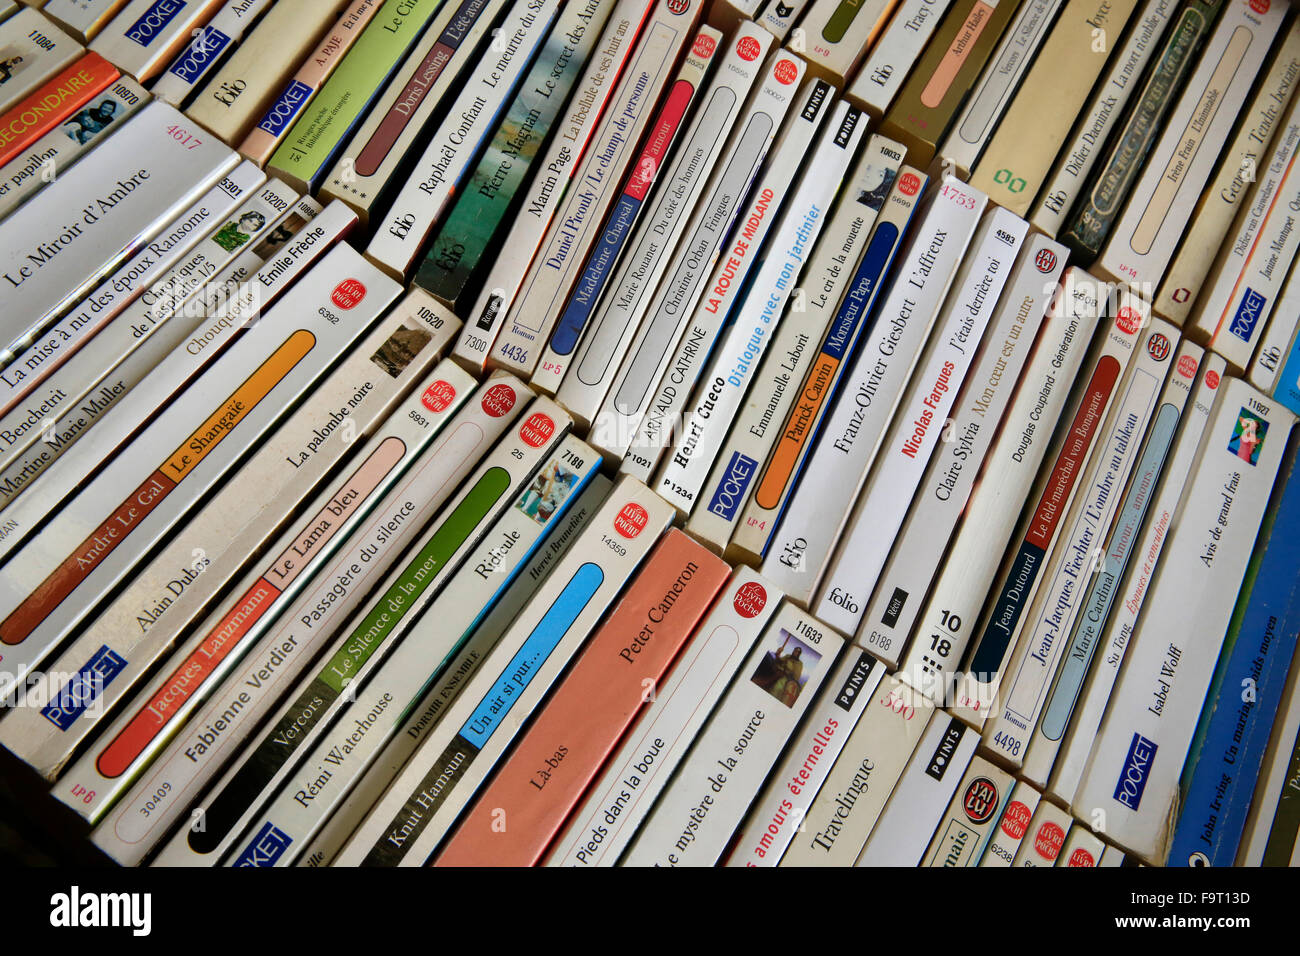 Second-hand books. - Stock Image